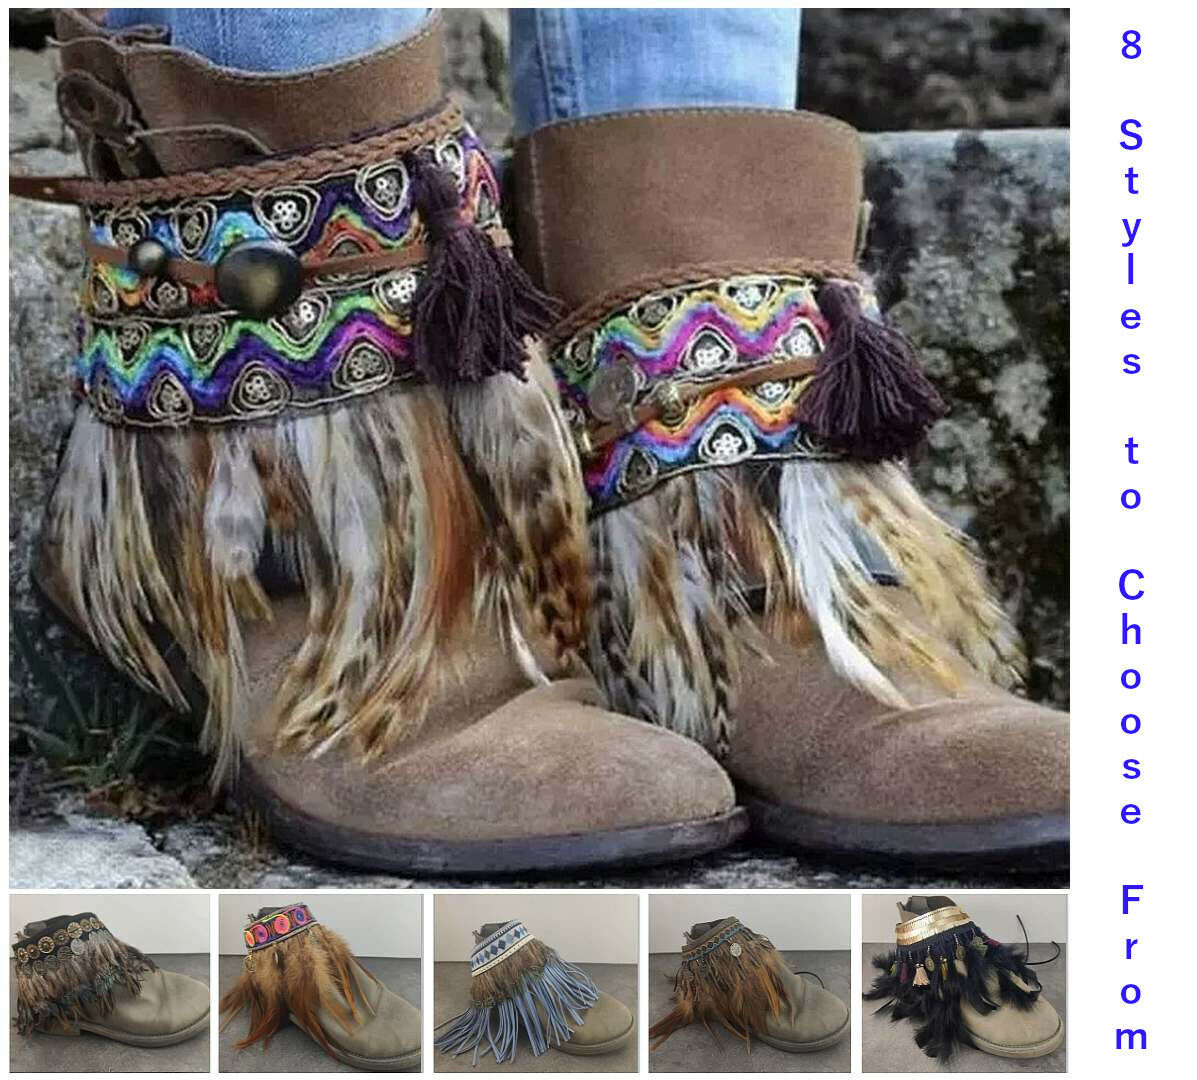 Cowboy Indian Style Boot Bling Decorations Ankle Anklet Bracelets Jewelry Strap